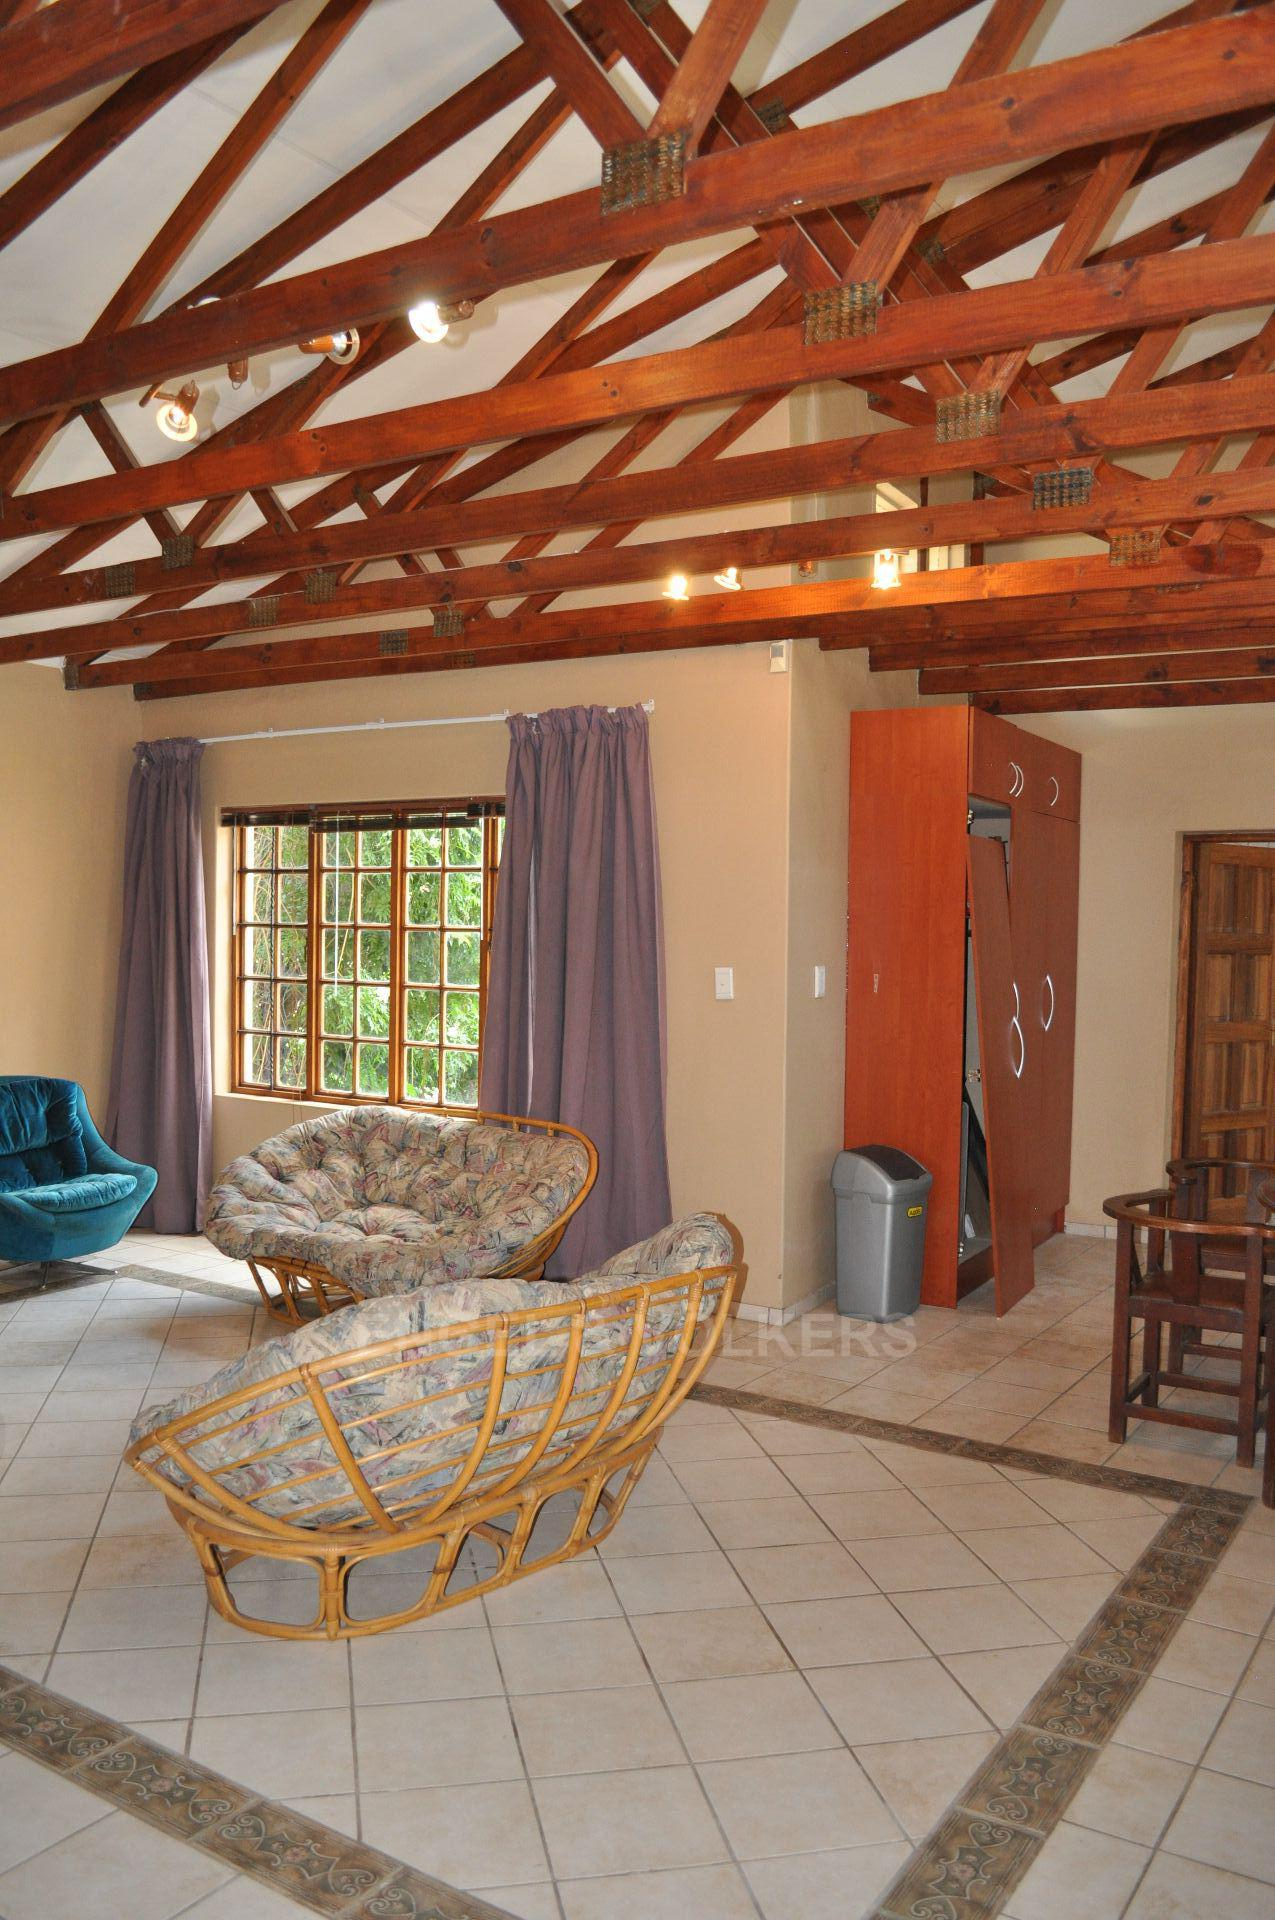 Doringkloof property for sale. Ref No: 13579964. Picture no 40